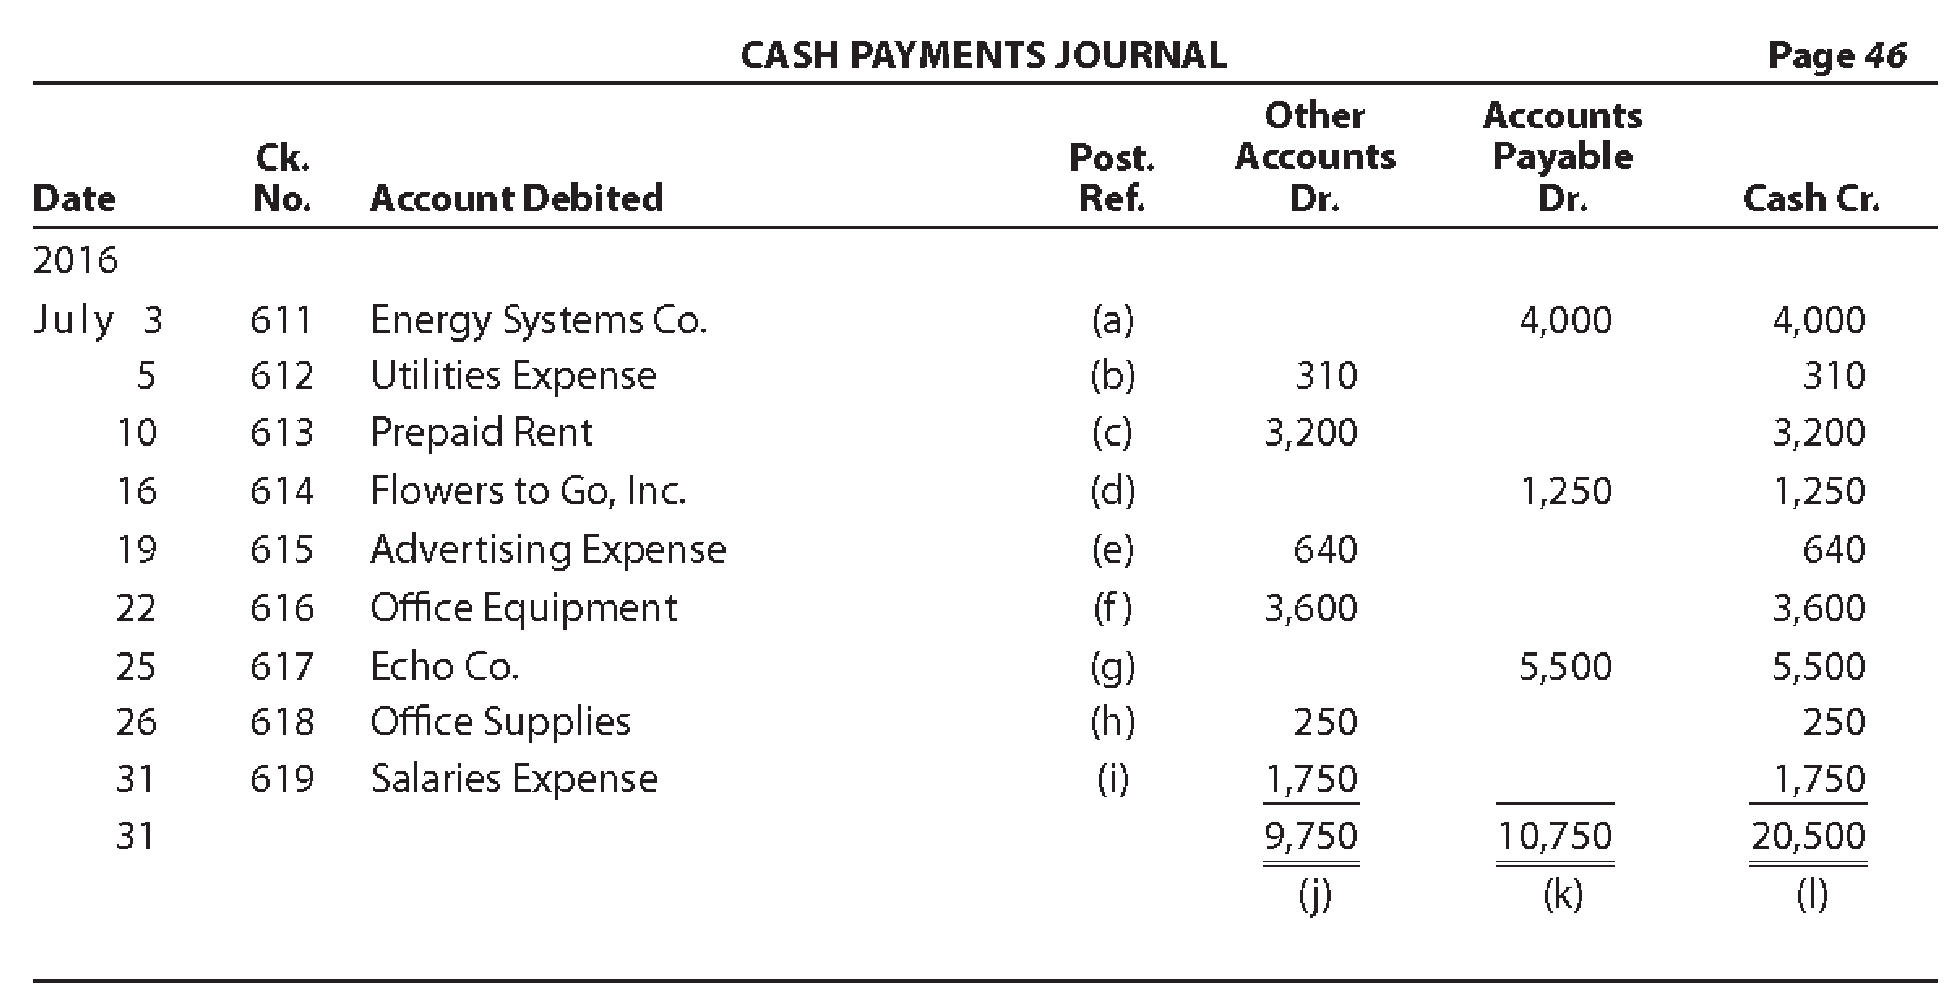 Chapter 5, Problem 12E, Using the following cash payments journal, identify each of the posting references, indicated by a